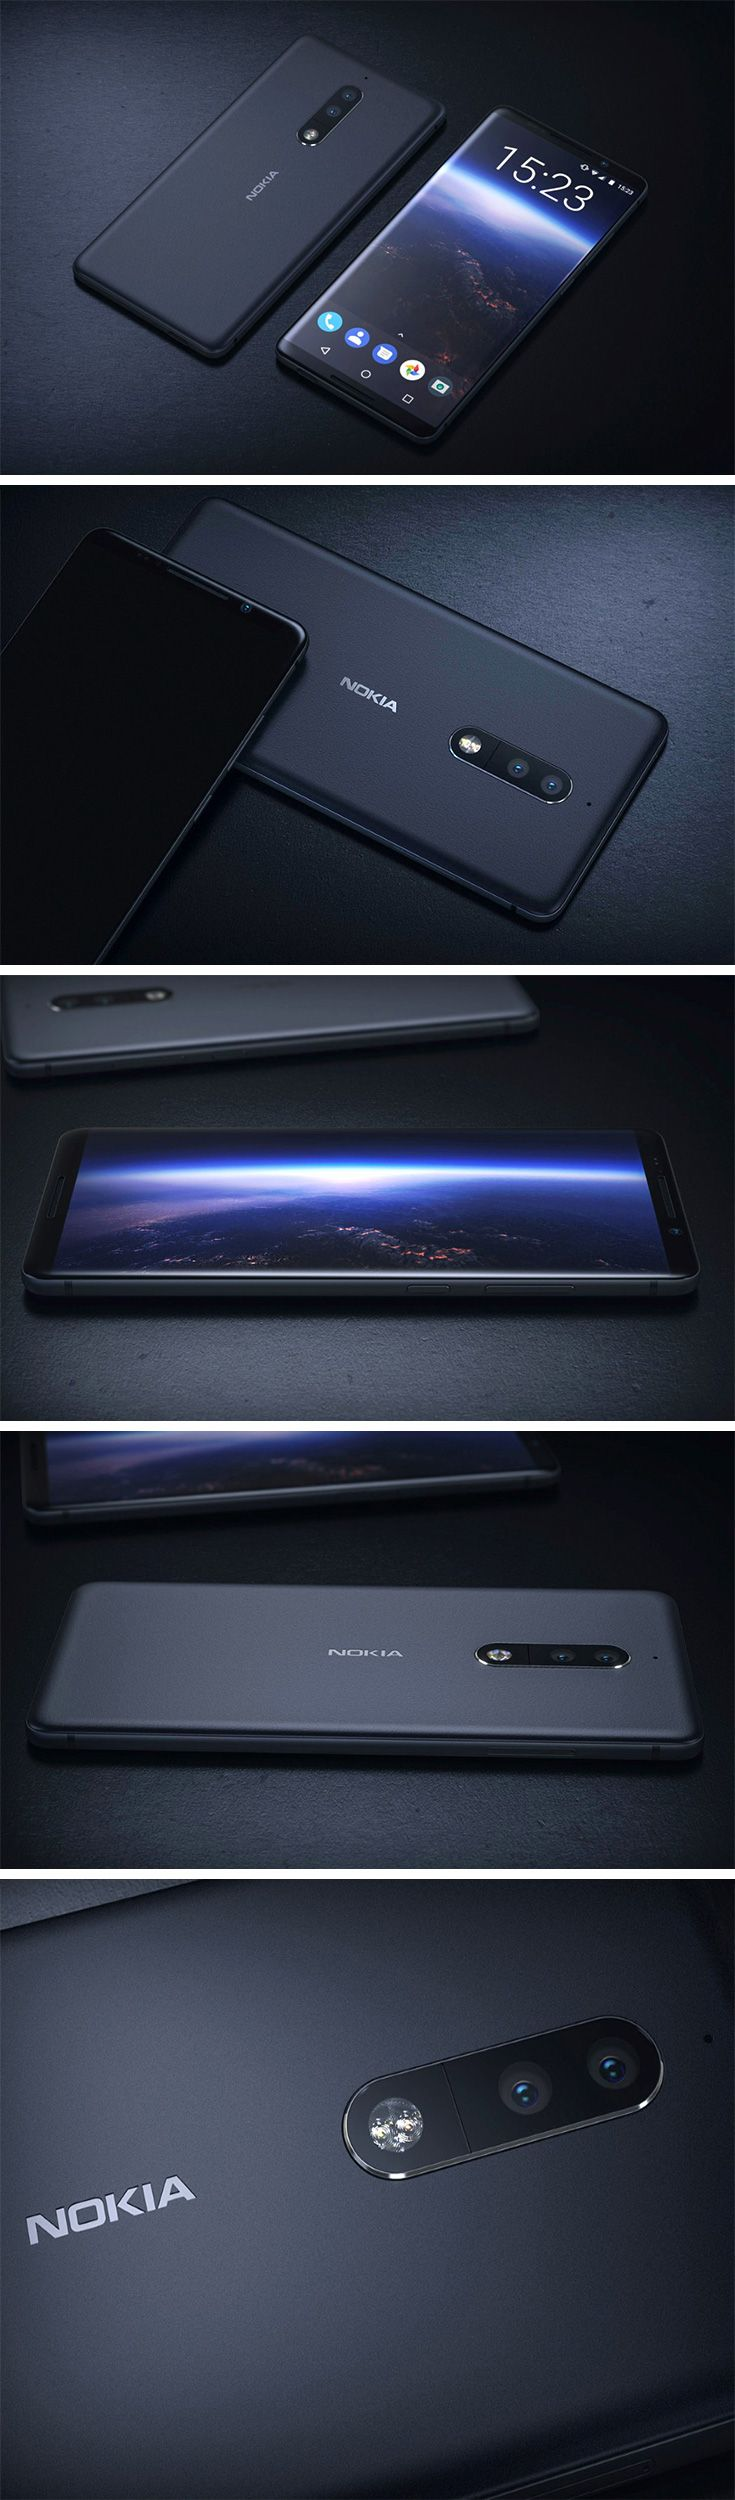 The Nokia Vision 2018 concept phone brings Nokia's Lumia aesthetic to modern times, with bezel-less screens, chrome accents, a dual back-facing camera, and Android-powered brain (85% of the world's favorite mobile OS). Even with its for-modern-times design, there's something still very Nokia about it. The tight radii on the phone's corners and glass with rounded edges.